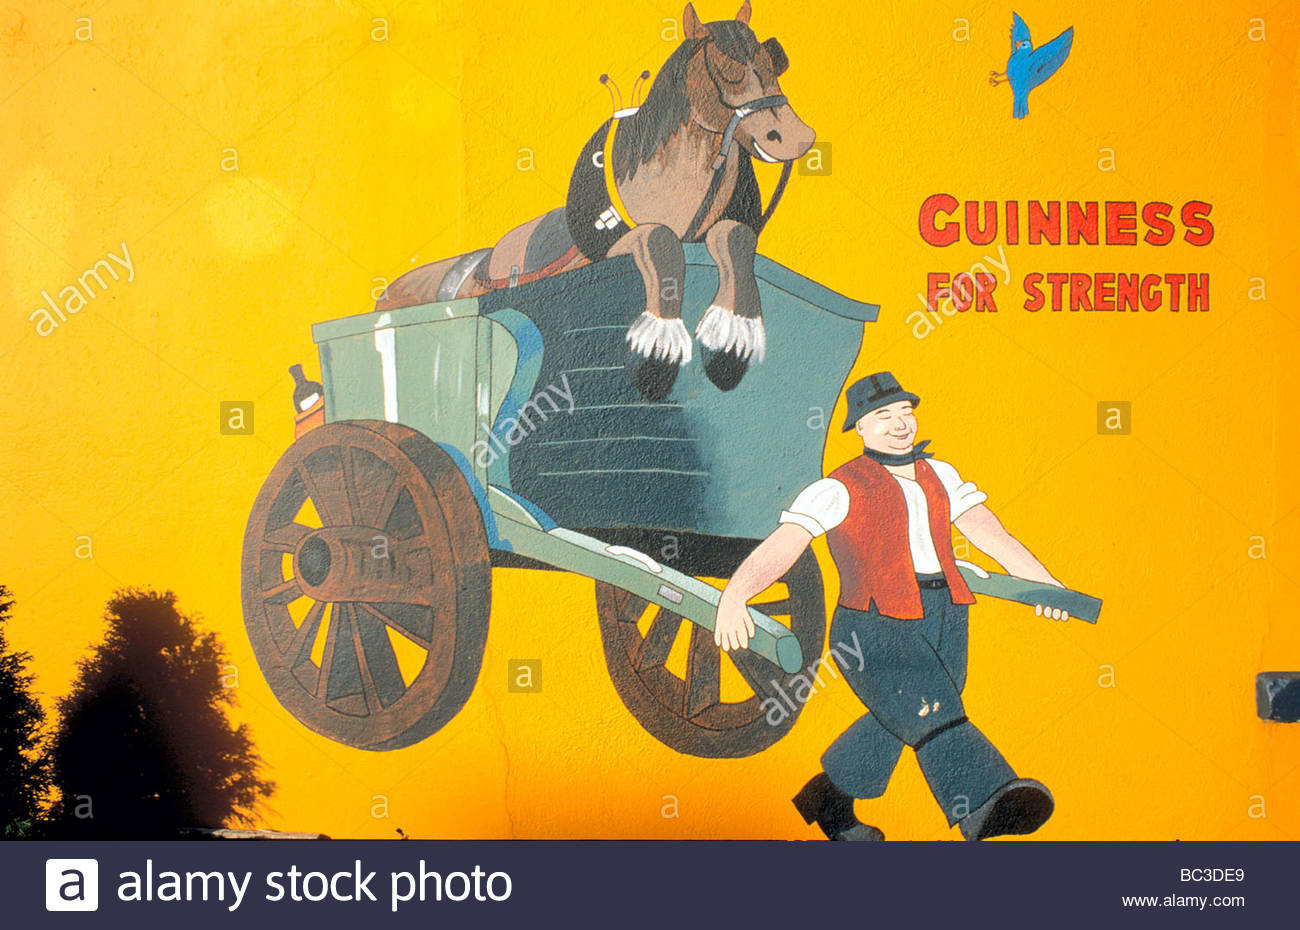 Ireland - Guinness-advertising Stock Photo: 24662689 - Alamy